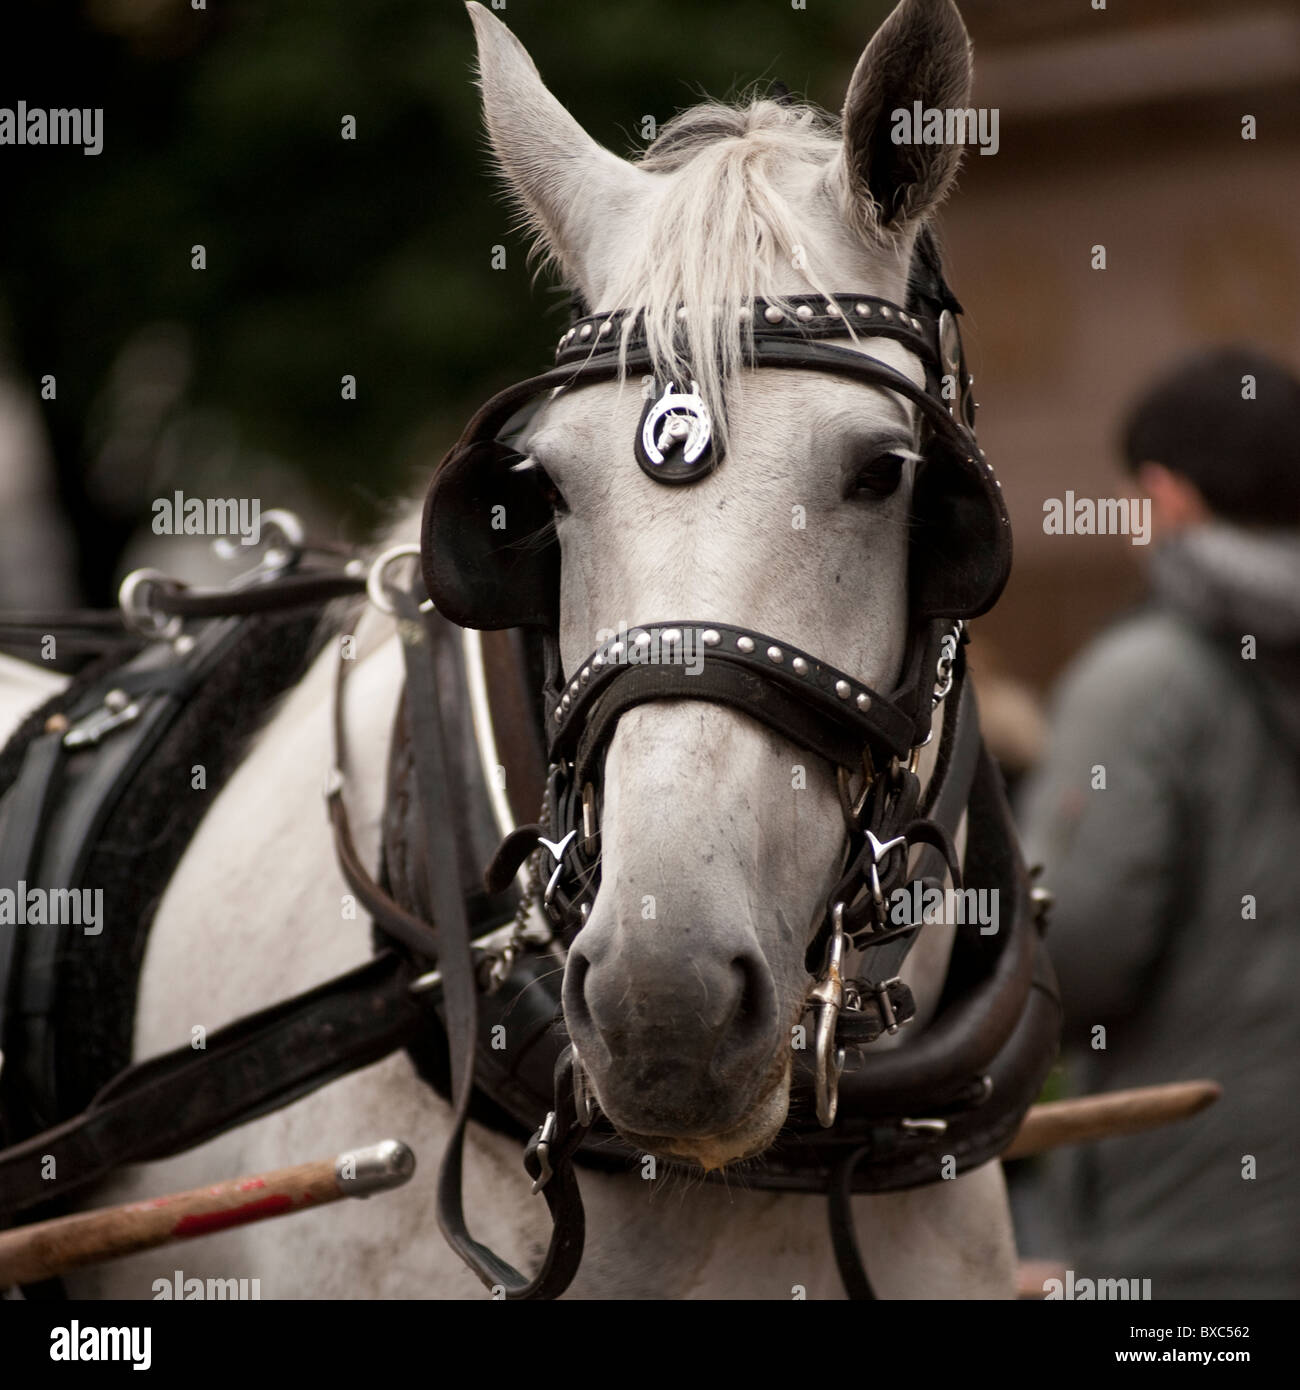 Carriage Horse outside Central Park in Manhattan, New York City, U.S.A. - Stock Image